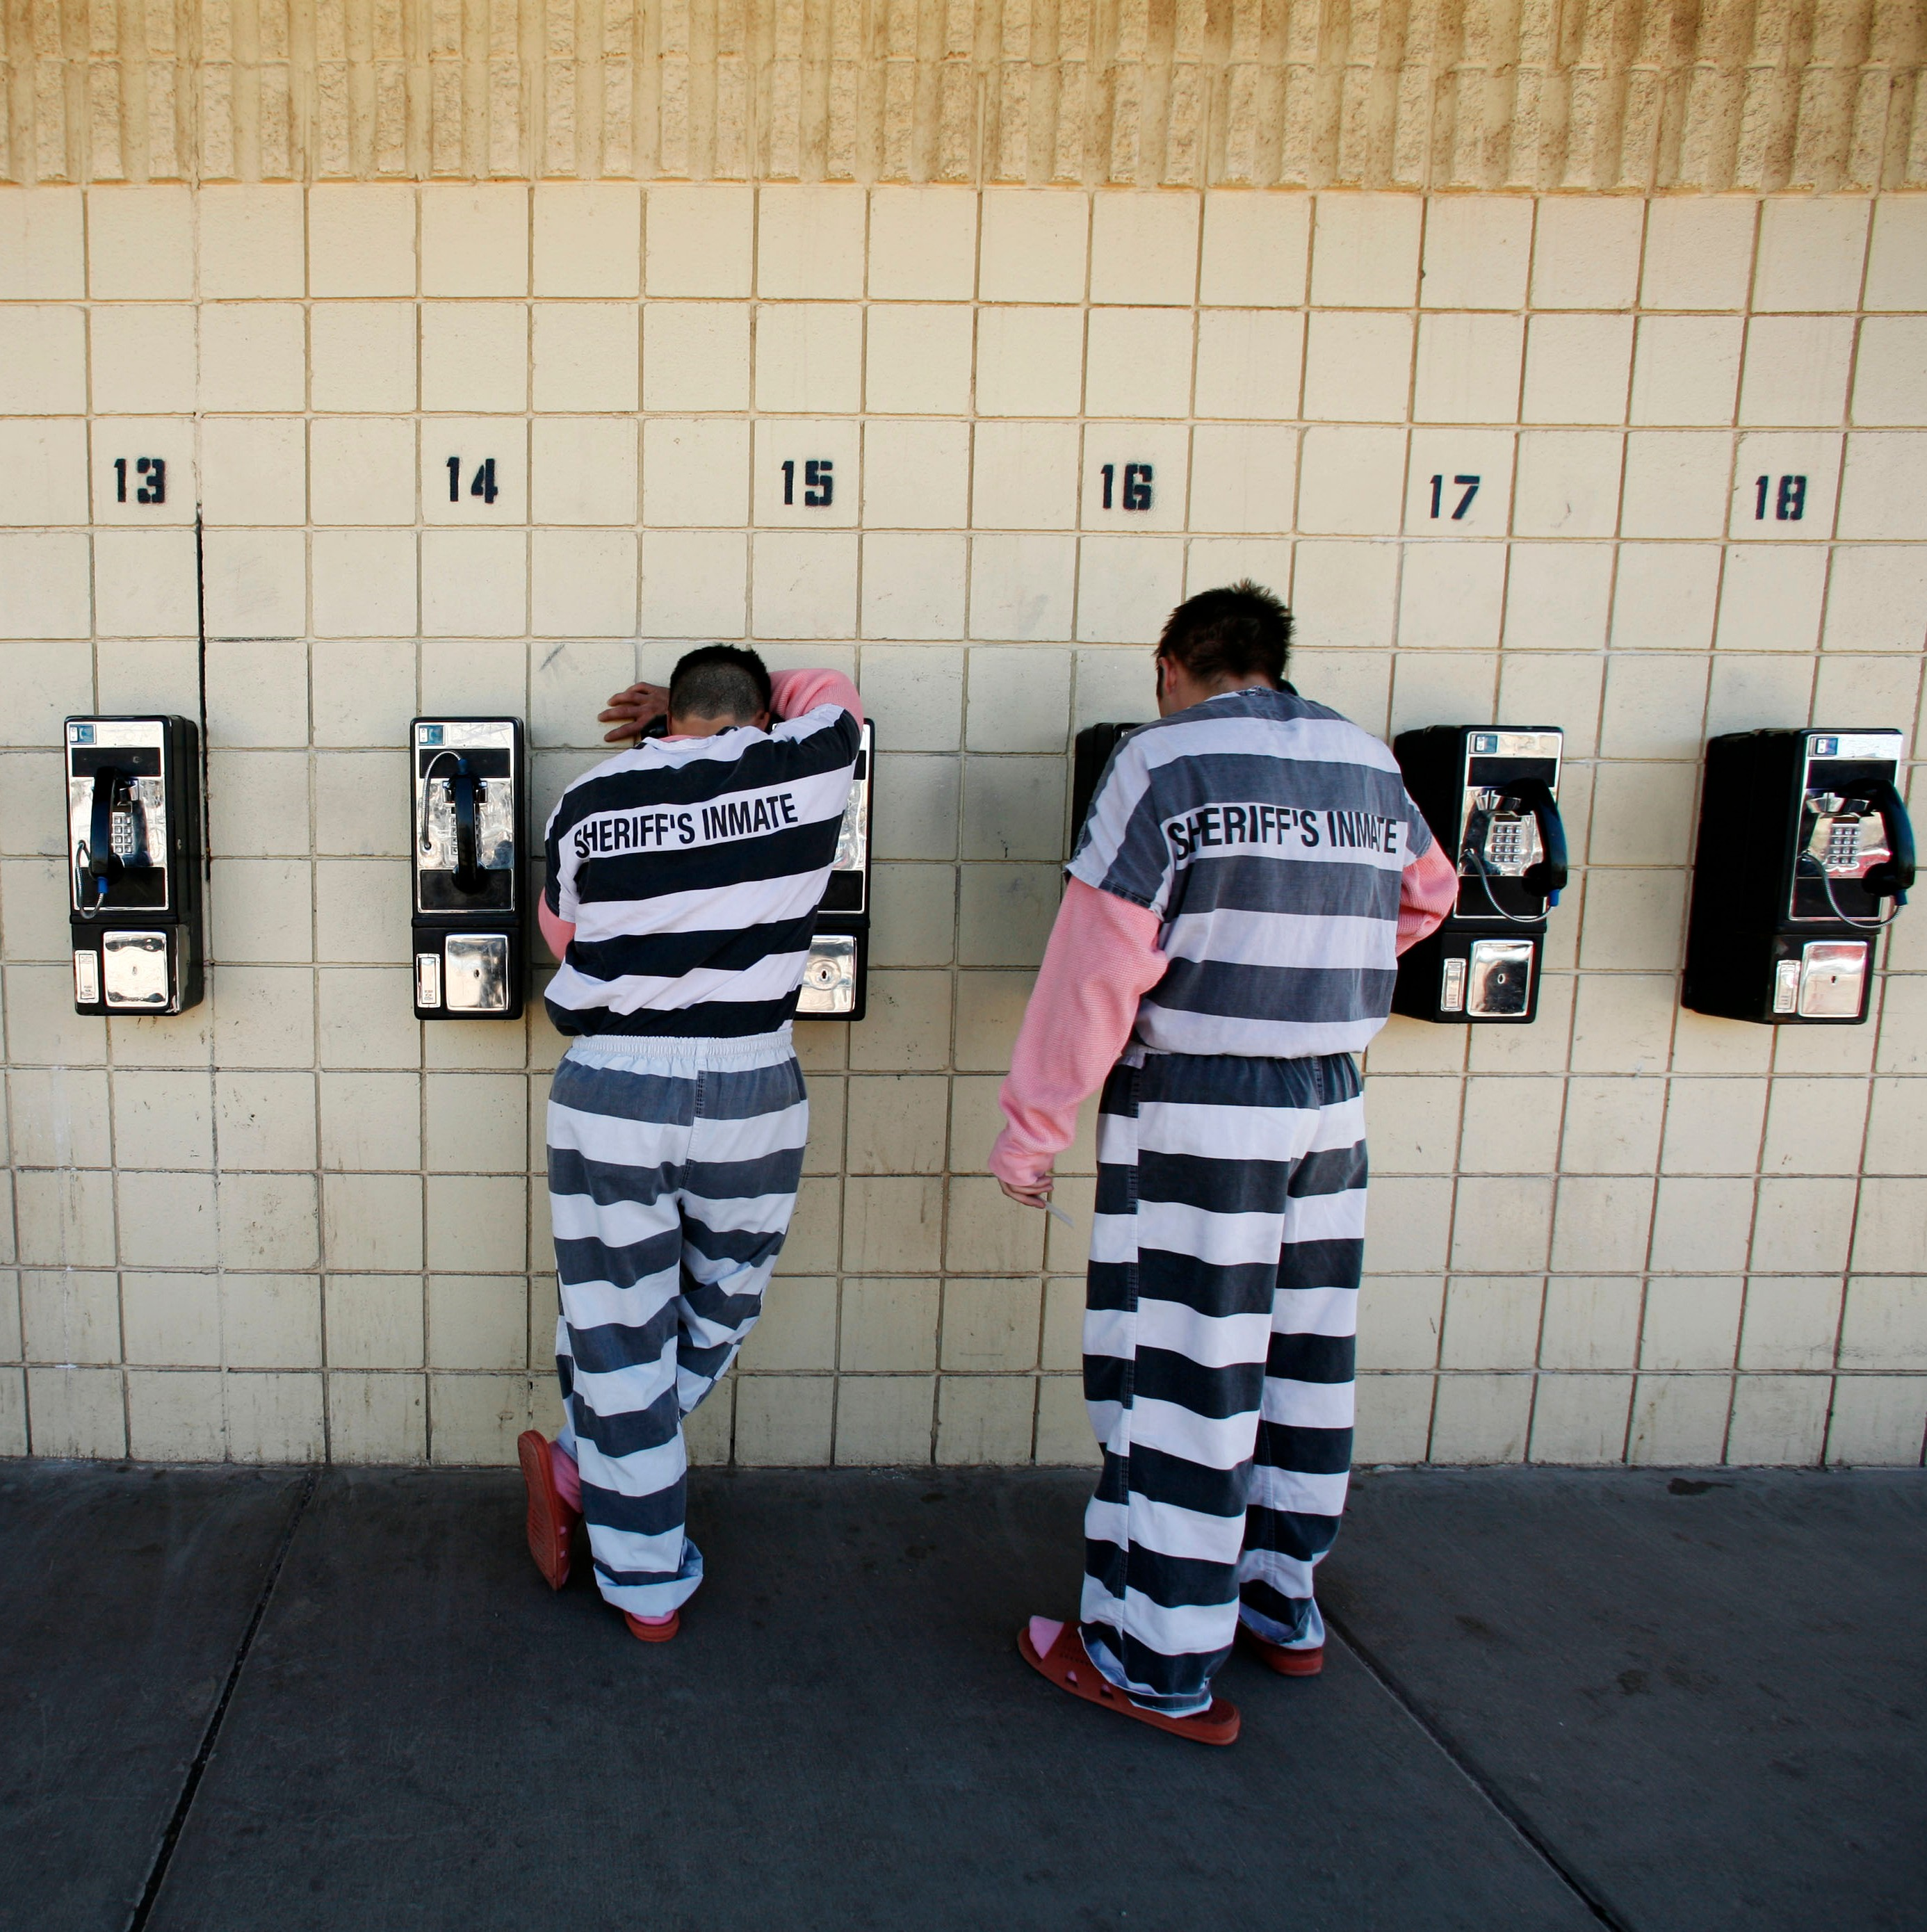 Prison inmate calling companies - Cutting The High Cost Of Prison Phone Calls Could Also Reduce Reoffender Rates Vice News